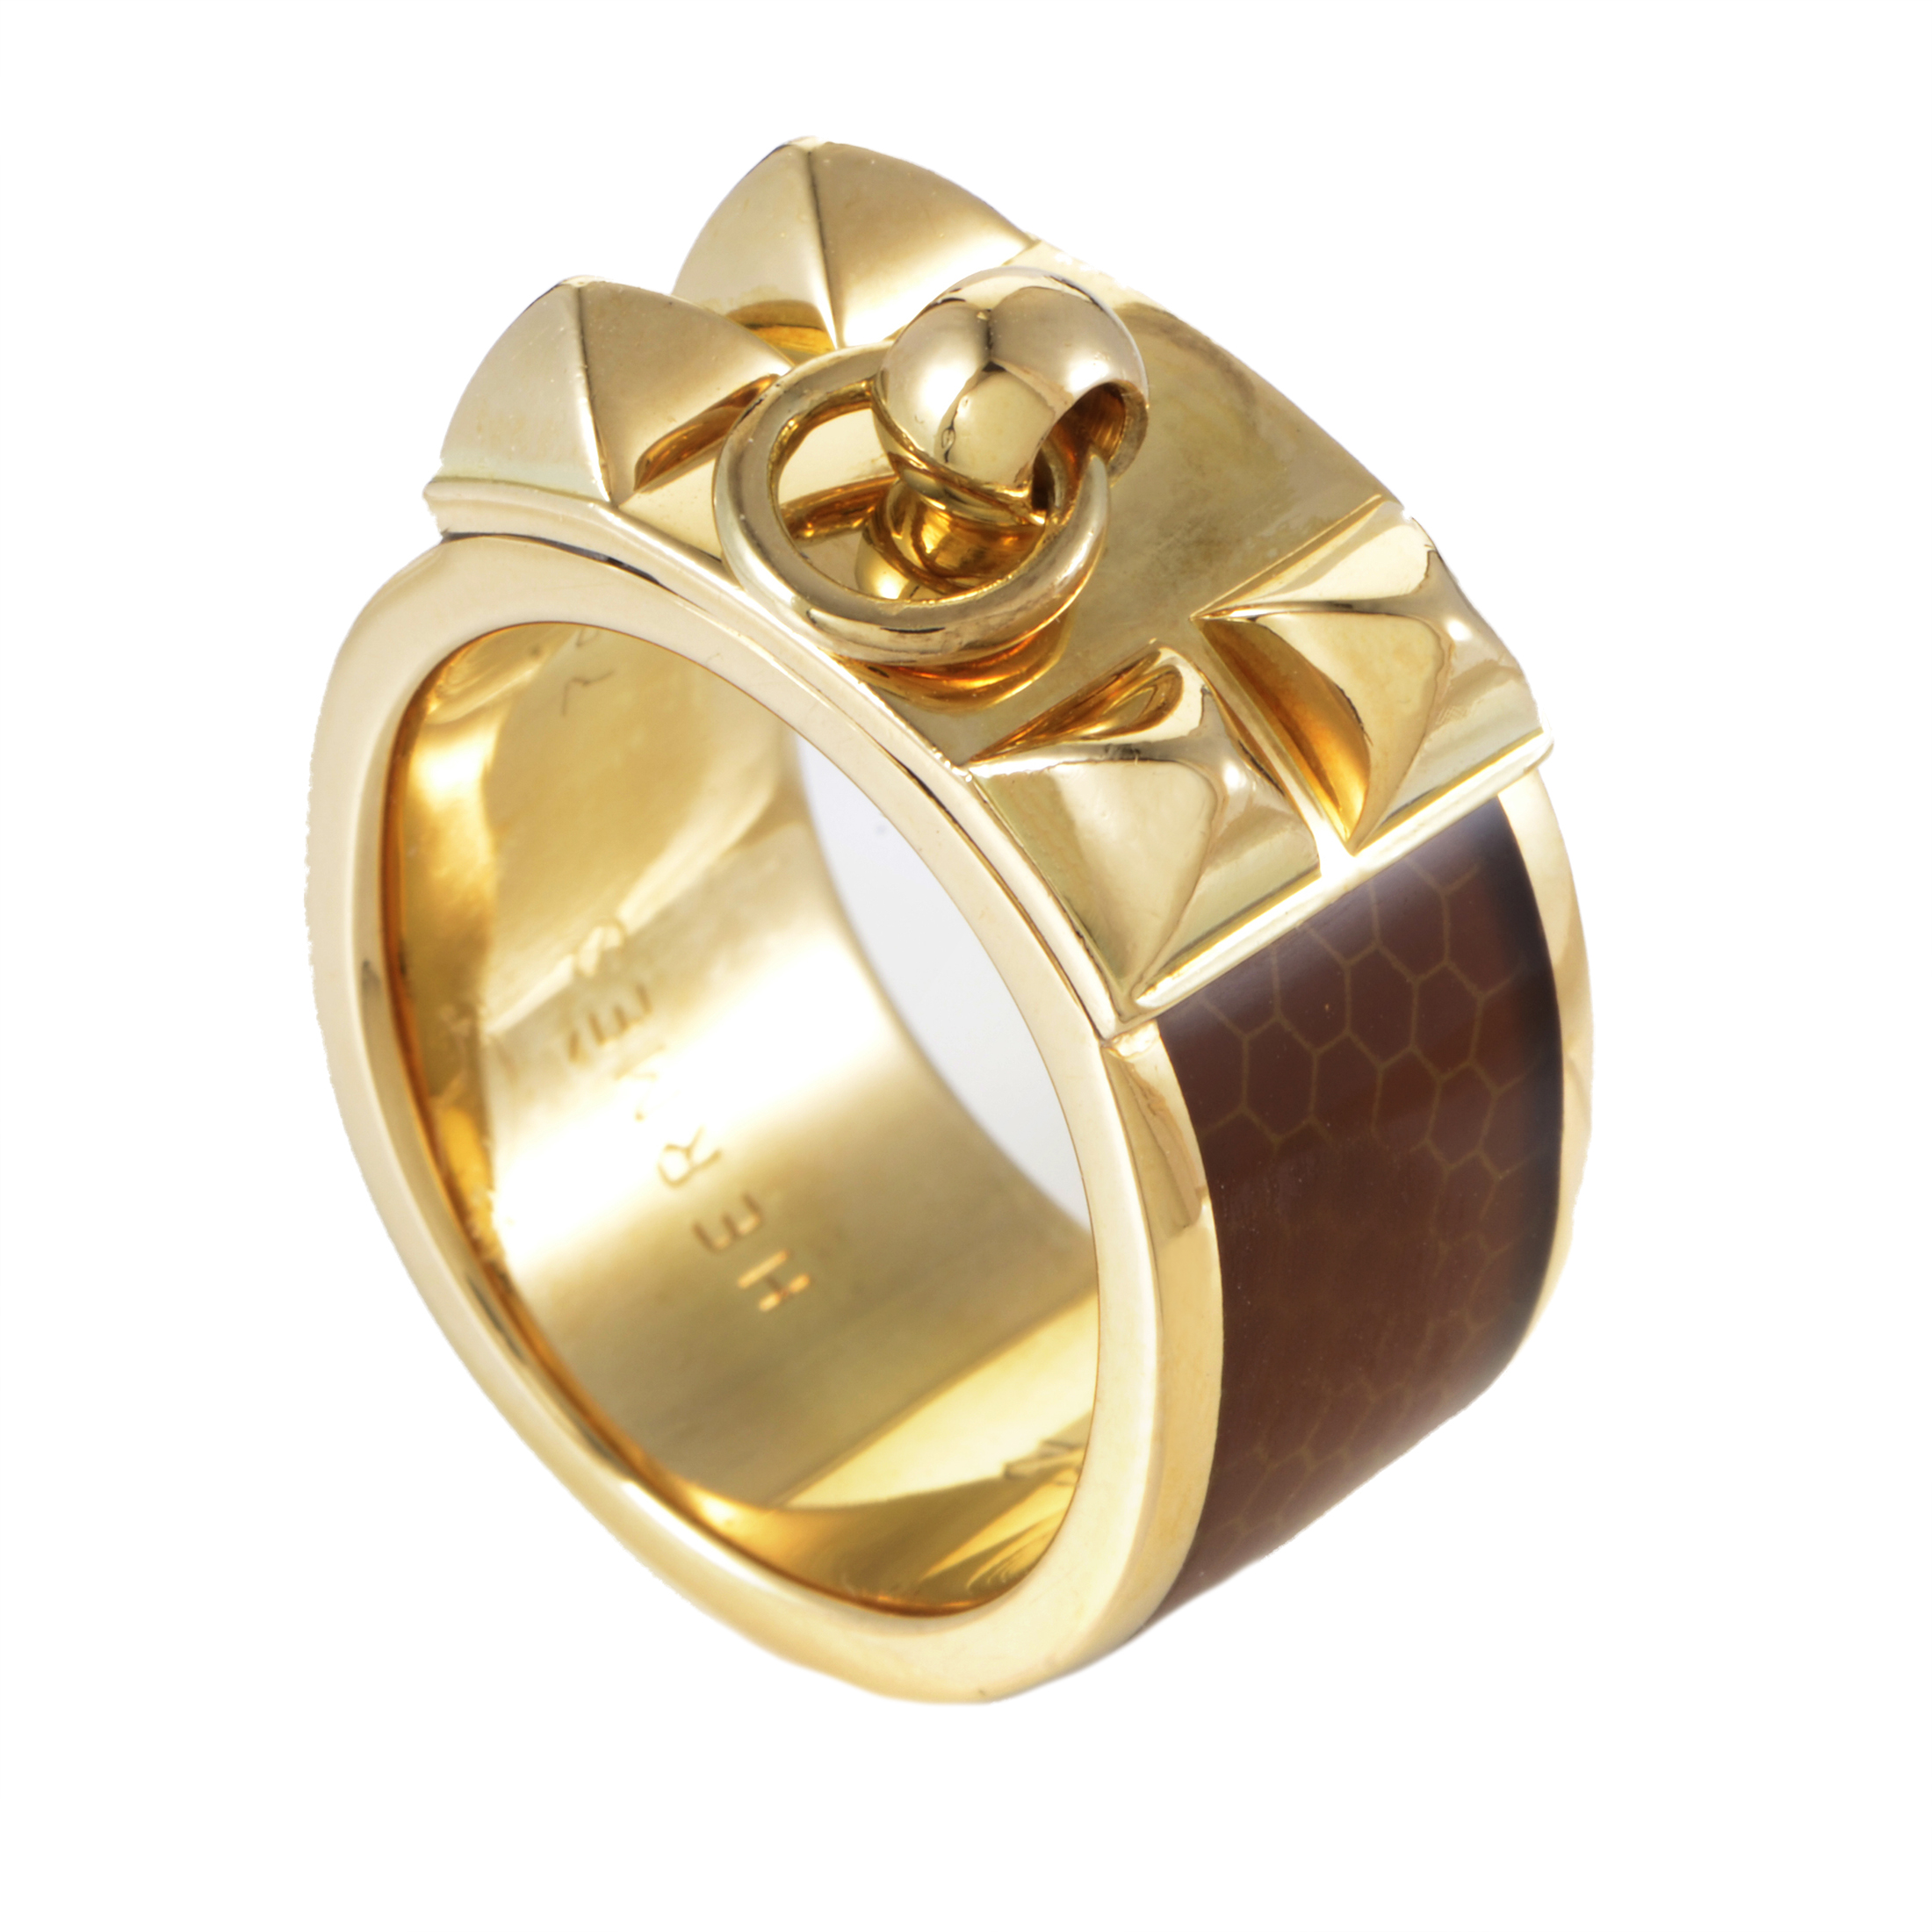 Hermès Collier de Chien Women's Enameled 18K Yellow Gold Band Ring